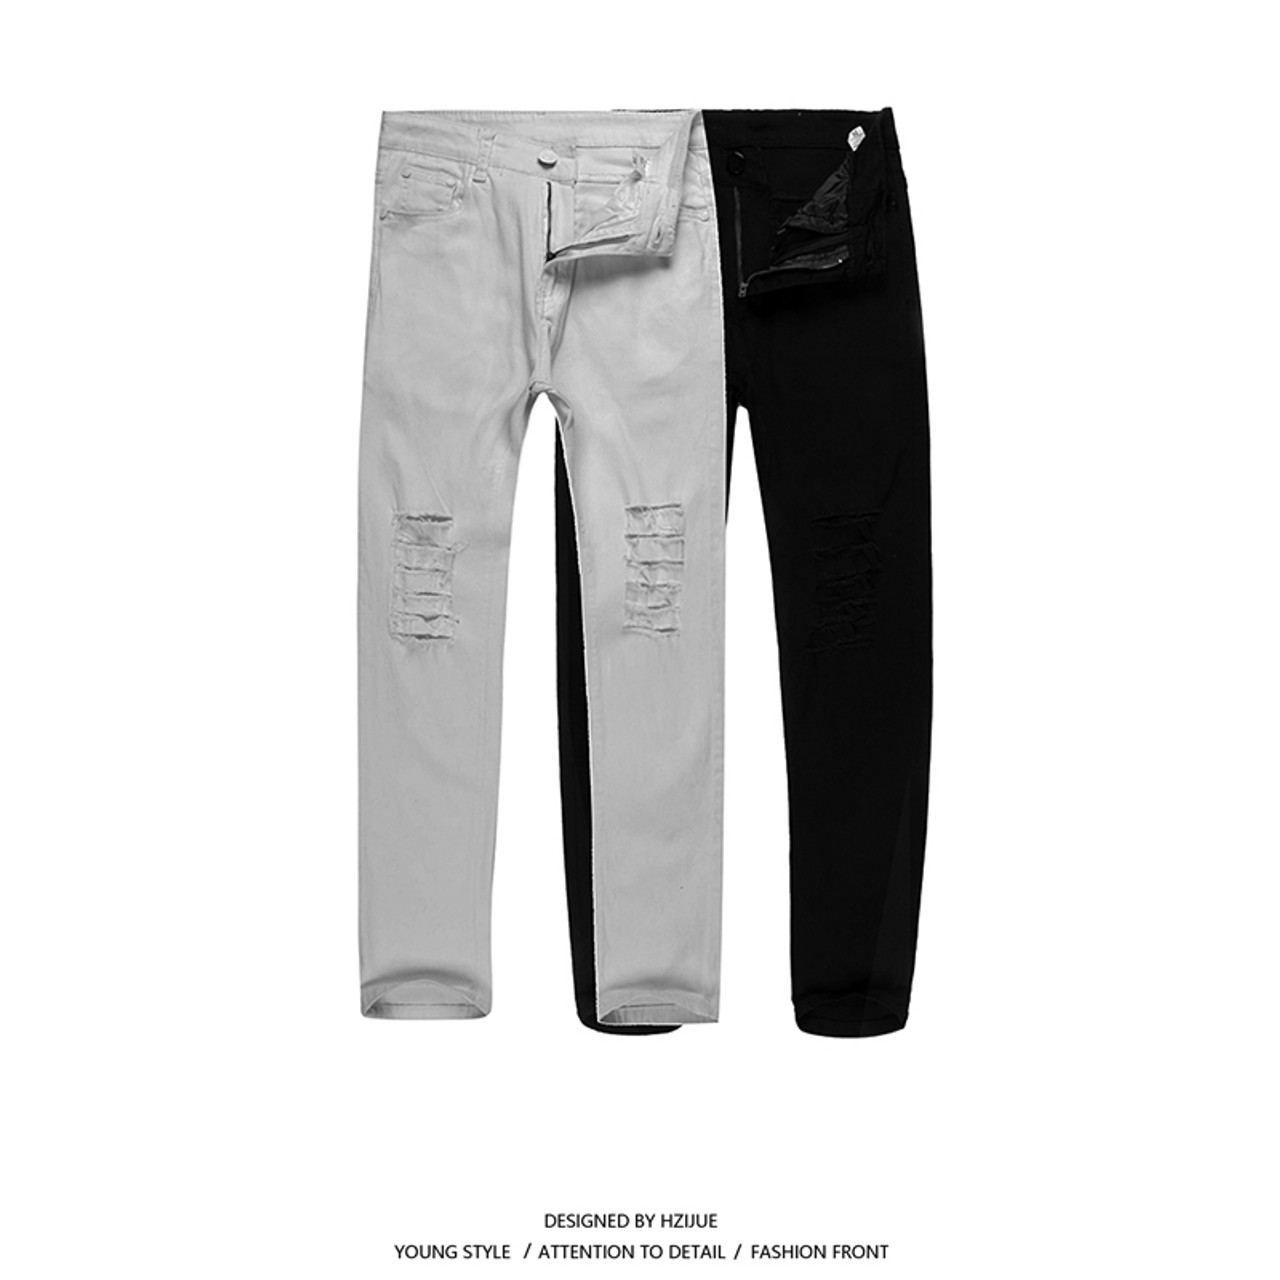 746e1139ef4 ... HZIJUE 2018 New Black Ripped Jeans Men With Holes Super Skinny Famous  Designer Brand Slim Fit ...